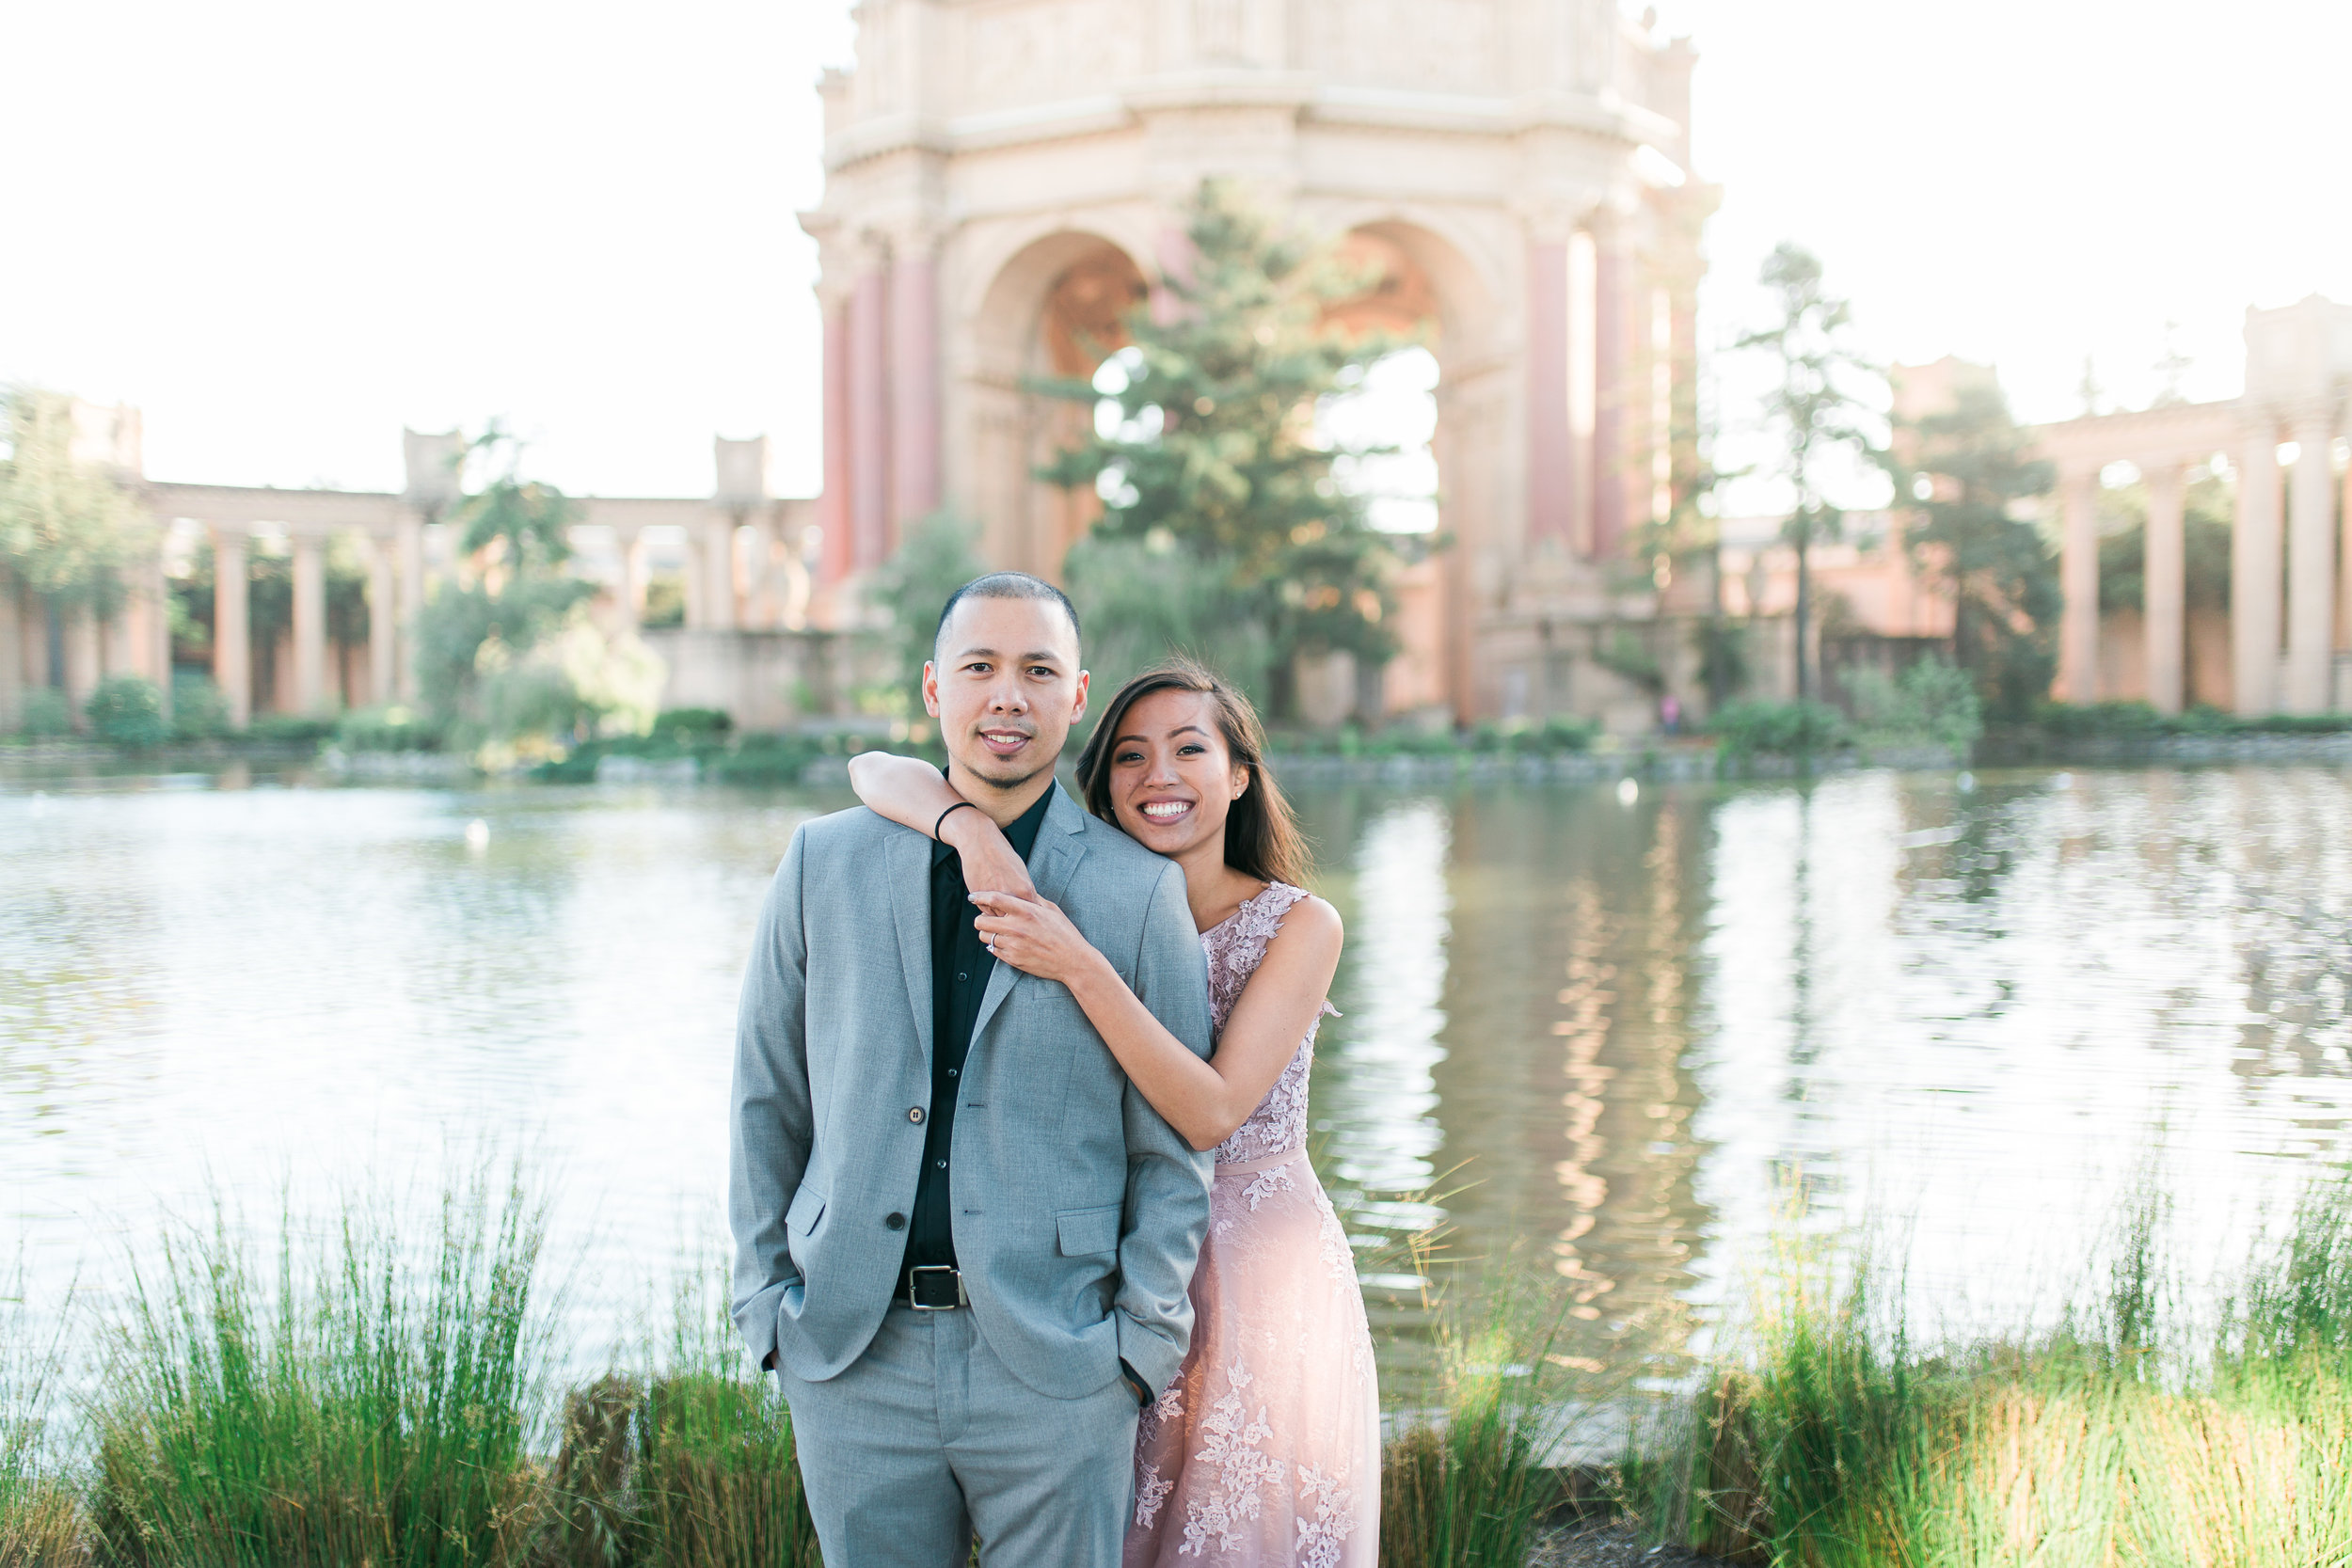 Palace of Fine Arts Engagement Photos - Lover's Lane San Francisco Engagement Session by JBJ Pictures Wedding Photographer in San Francisco (18).jpg